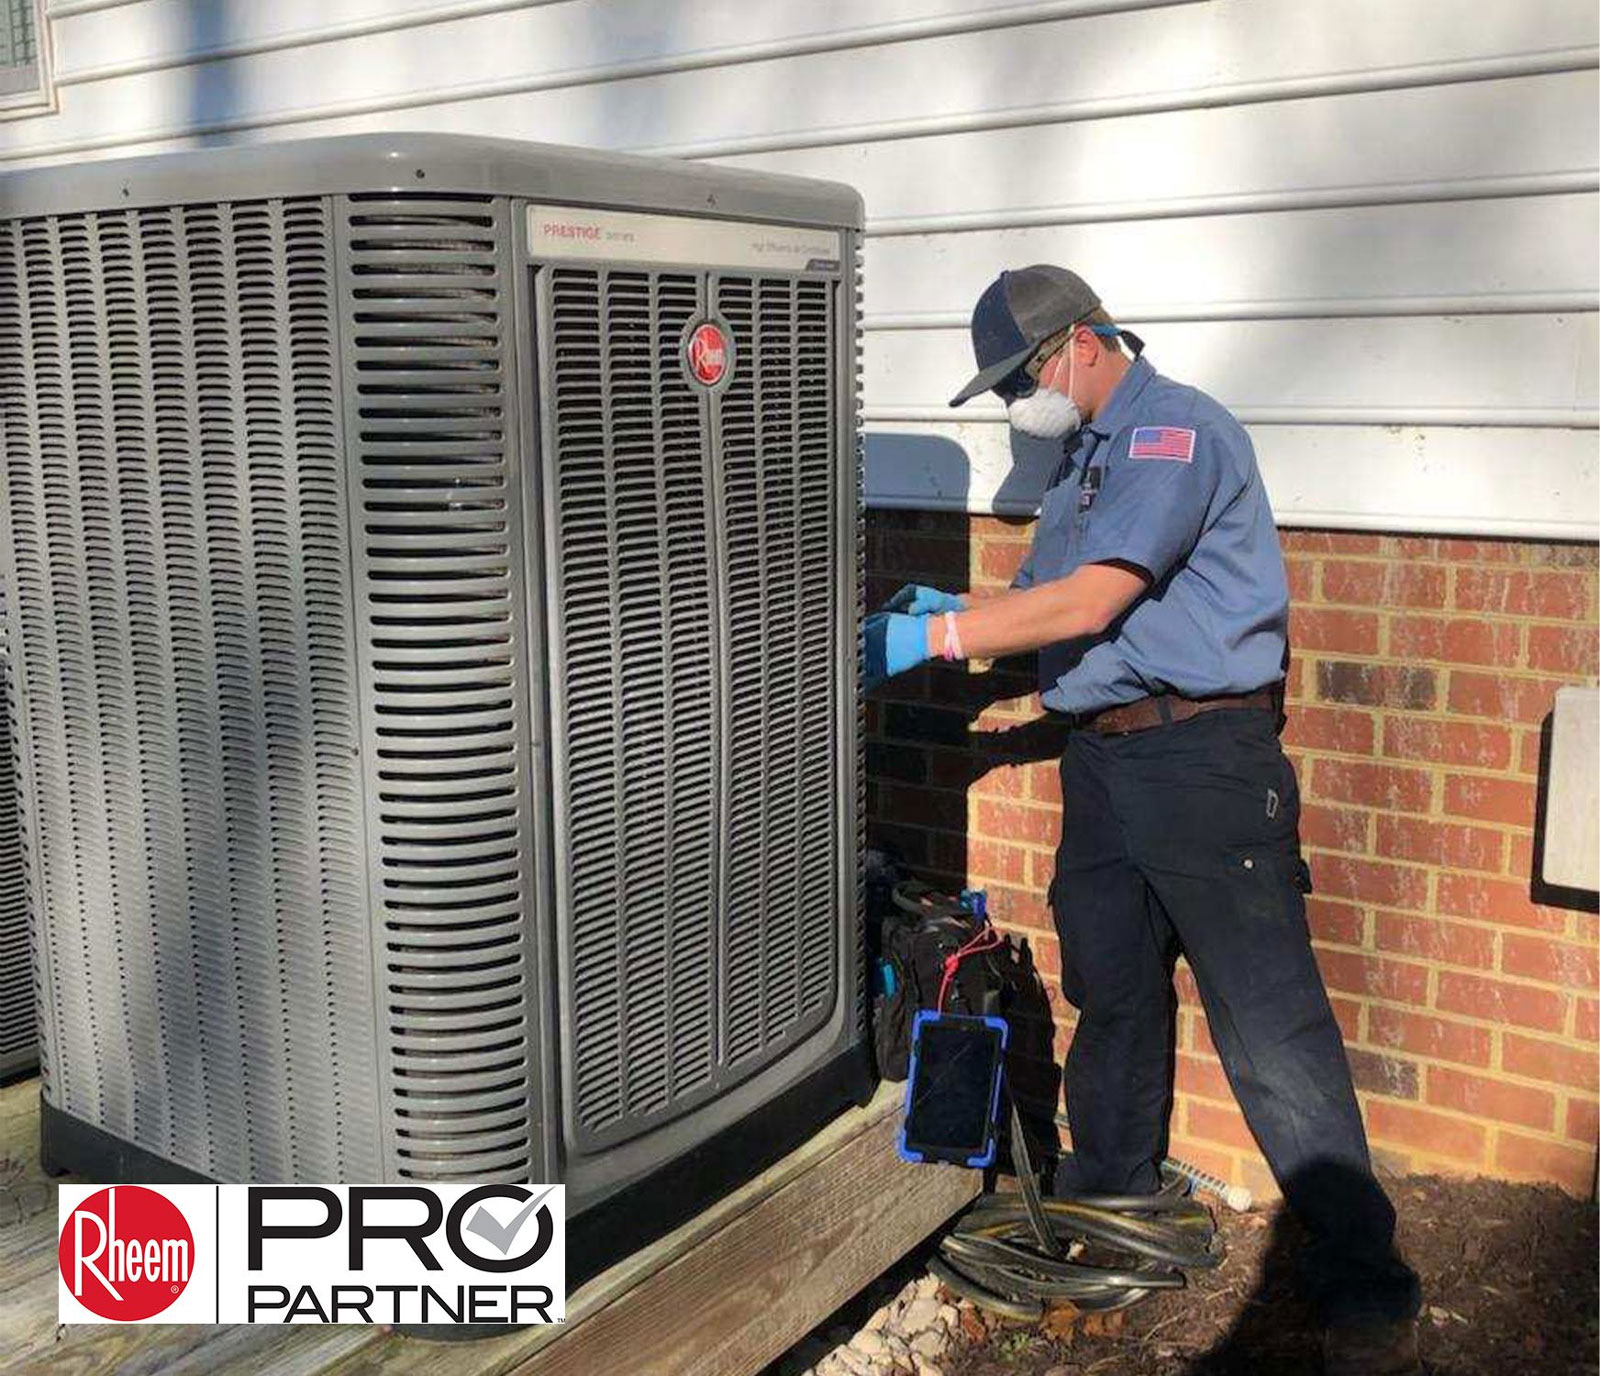 Williamsburg Heating & Air Conditioning fights COVIN-19 by Using Proper Equipment on Service Calls